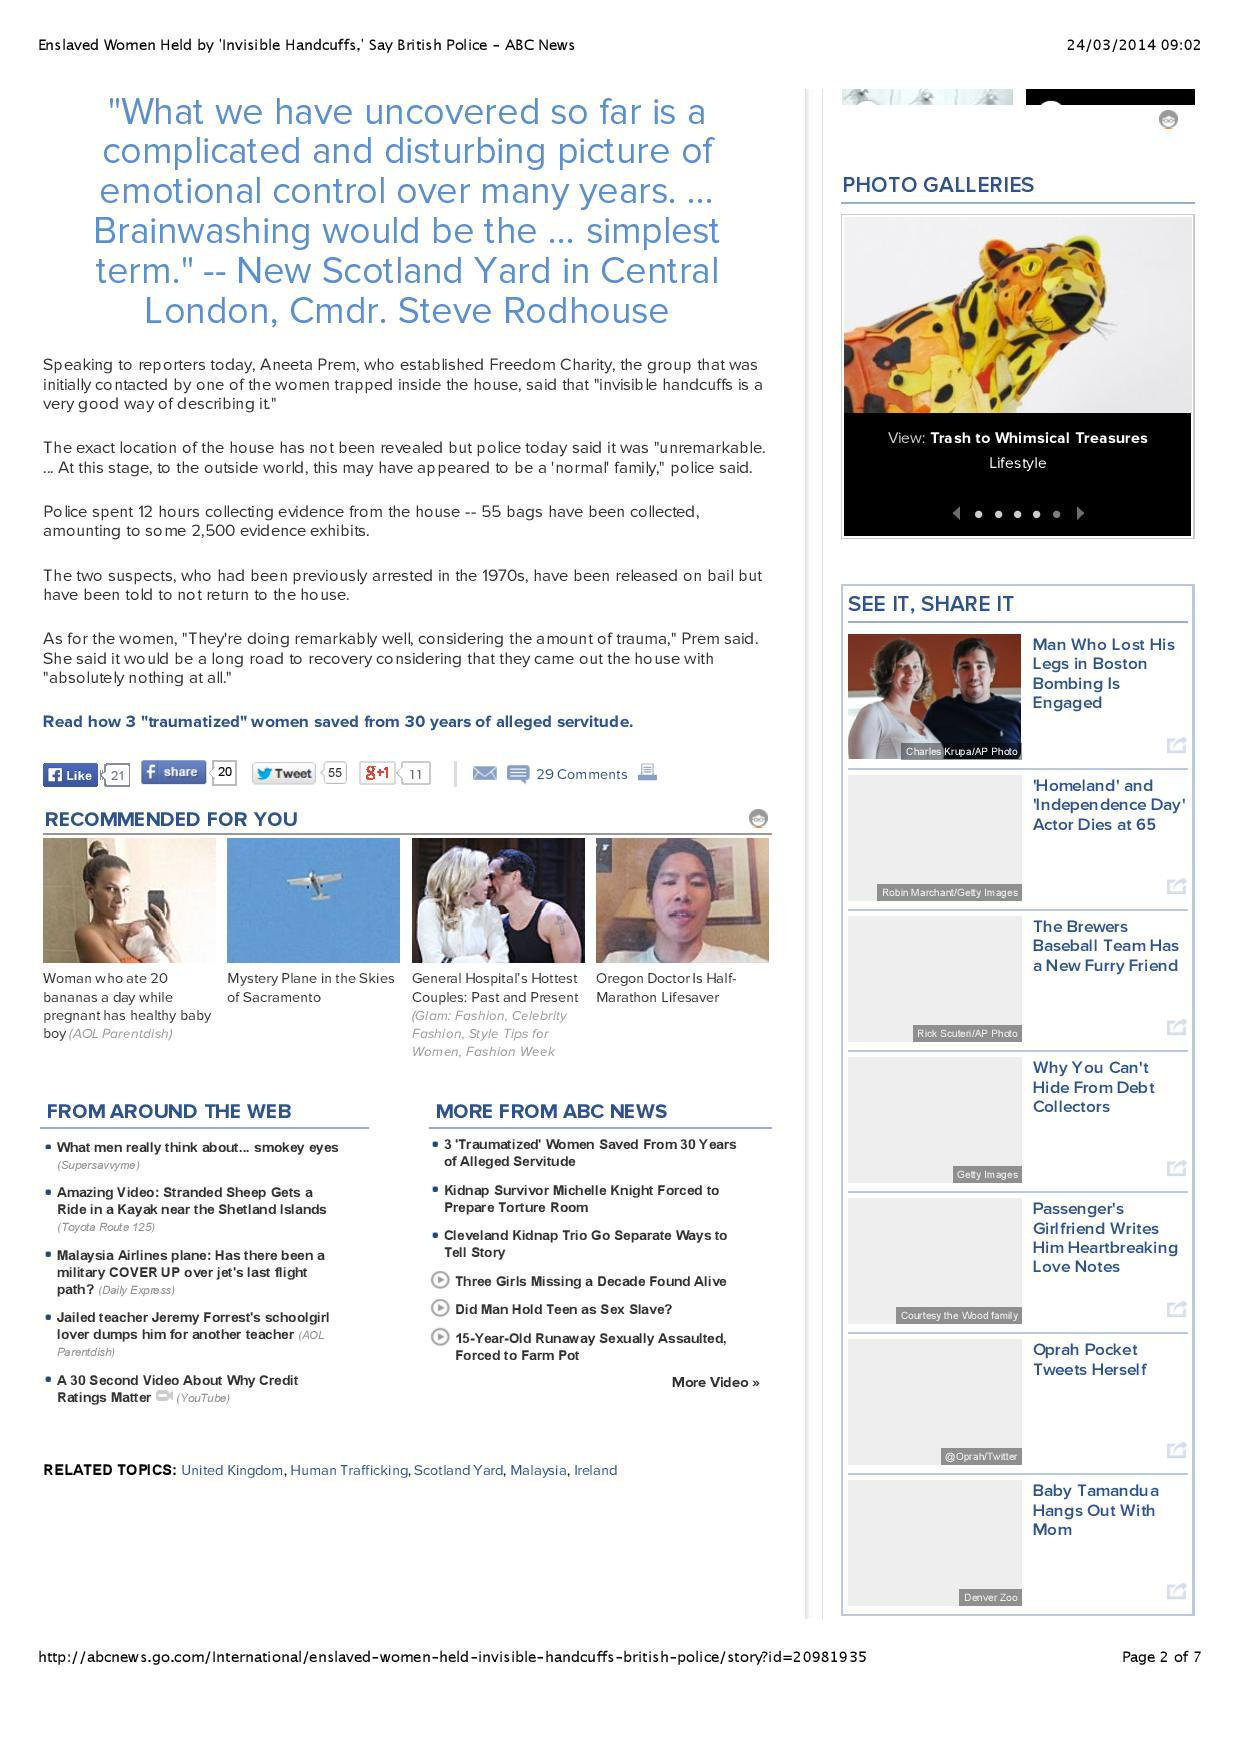 abc-news-enslaved-women-held-by-invisible-handcuffs-say-british-police-abc-news-page-002